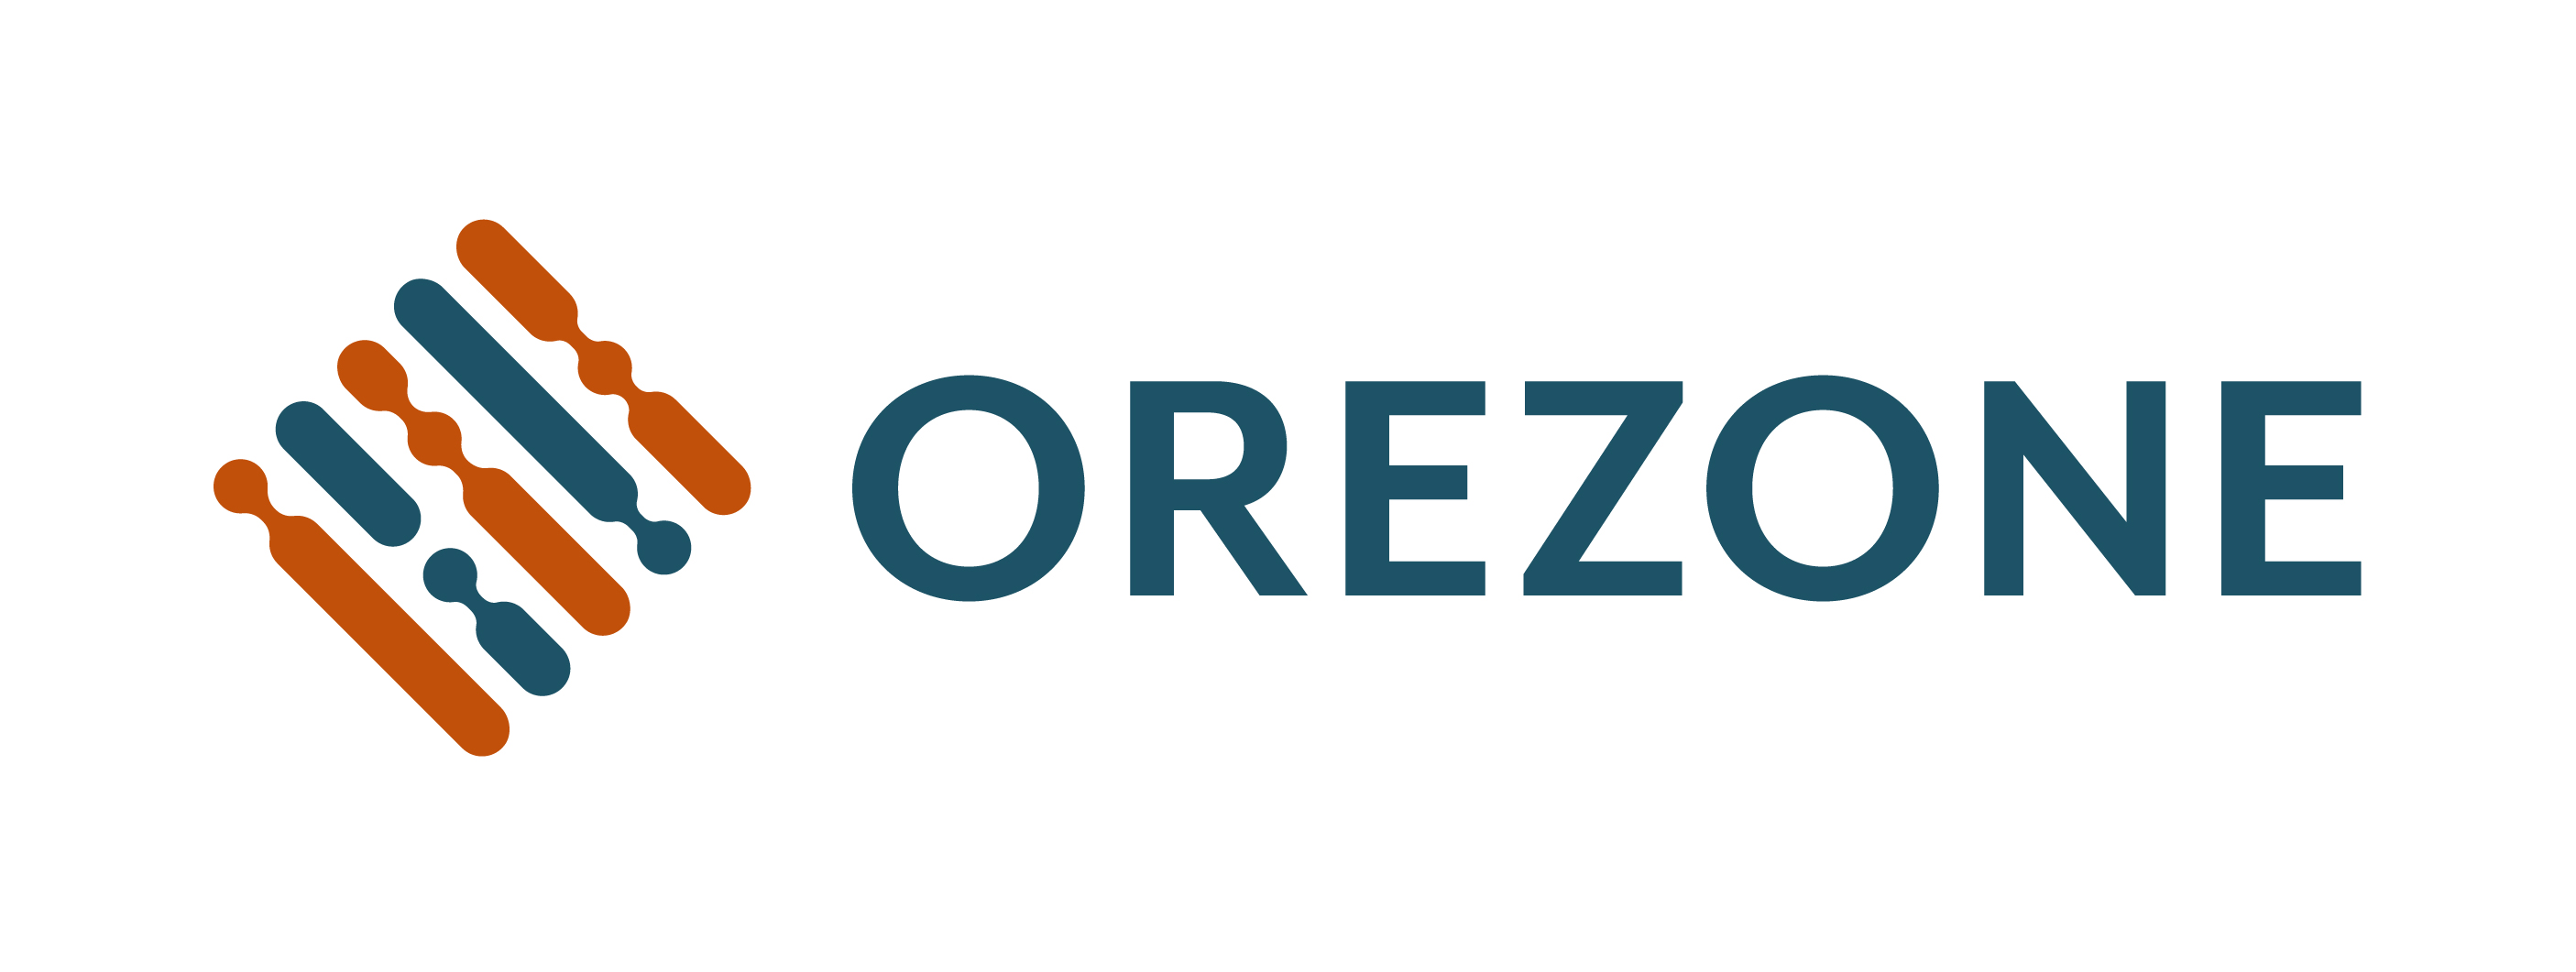 Orezone Grants Options to New Appointments